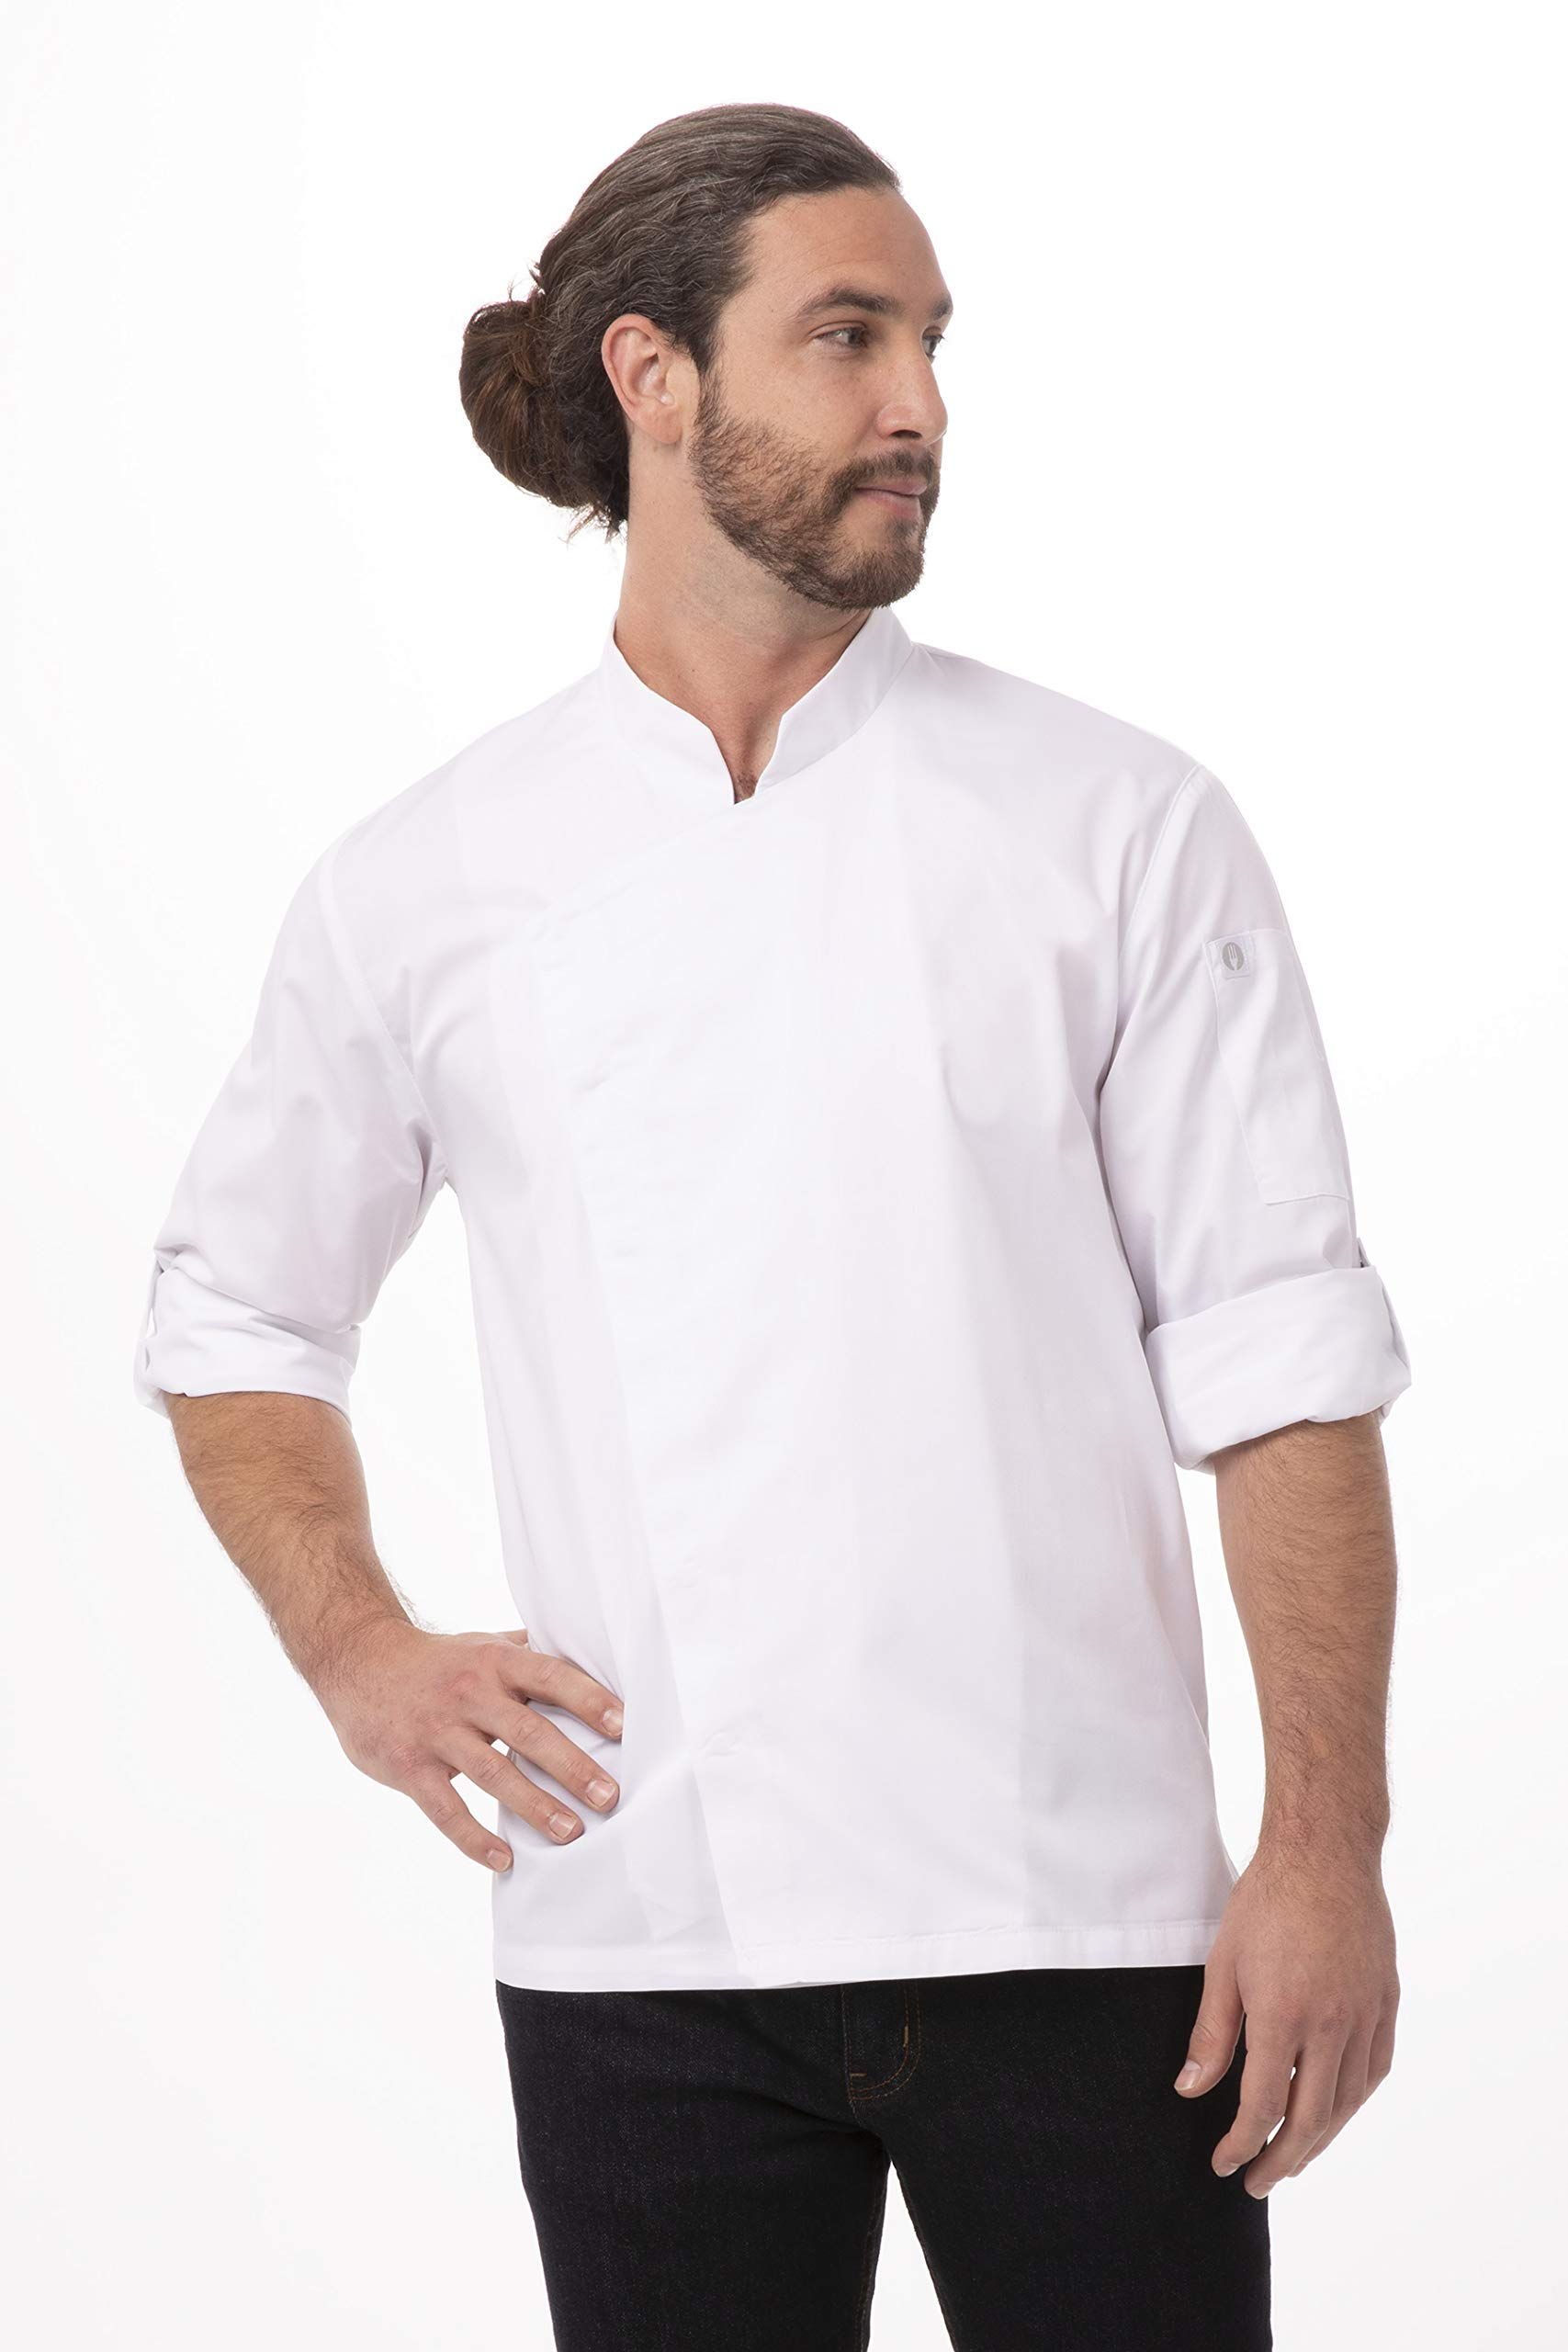 Chef Works Men's Lansing Chef Coat, White, Large by Chef Works